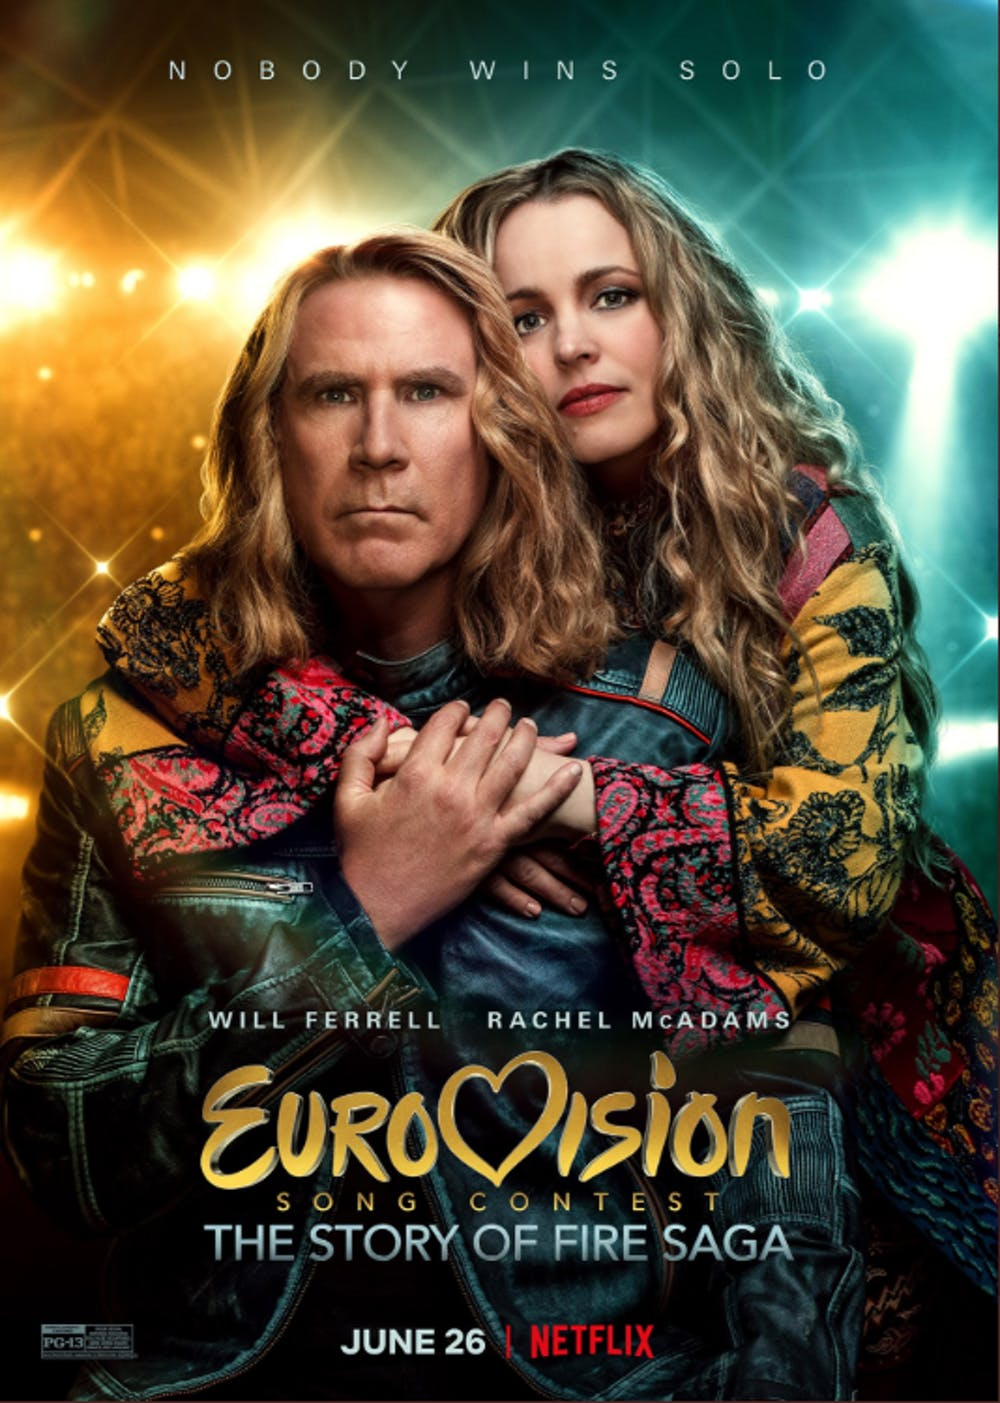 Film Review: Netflix's 'Eurovision Song Contest: The Story of Fire Saga' radiates happiness, charm